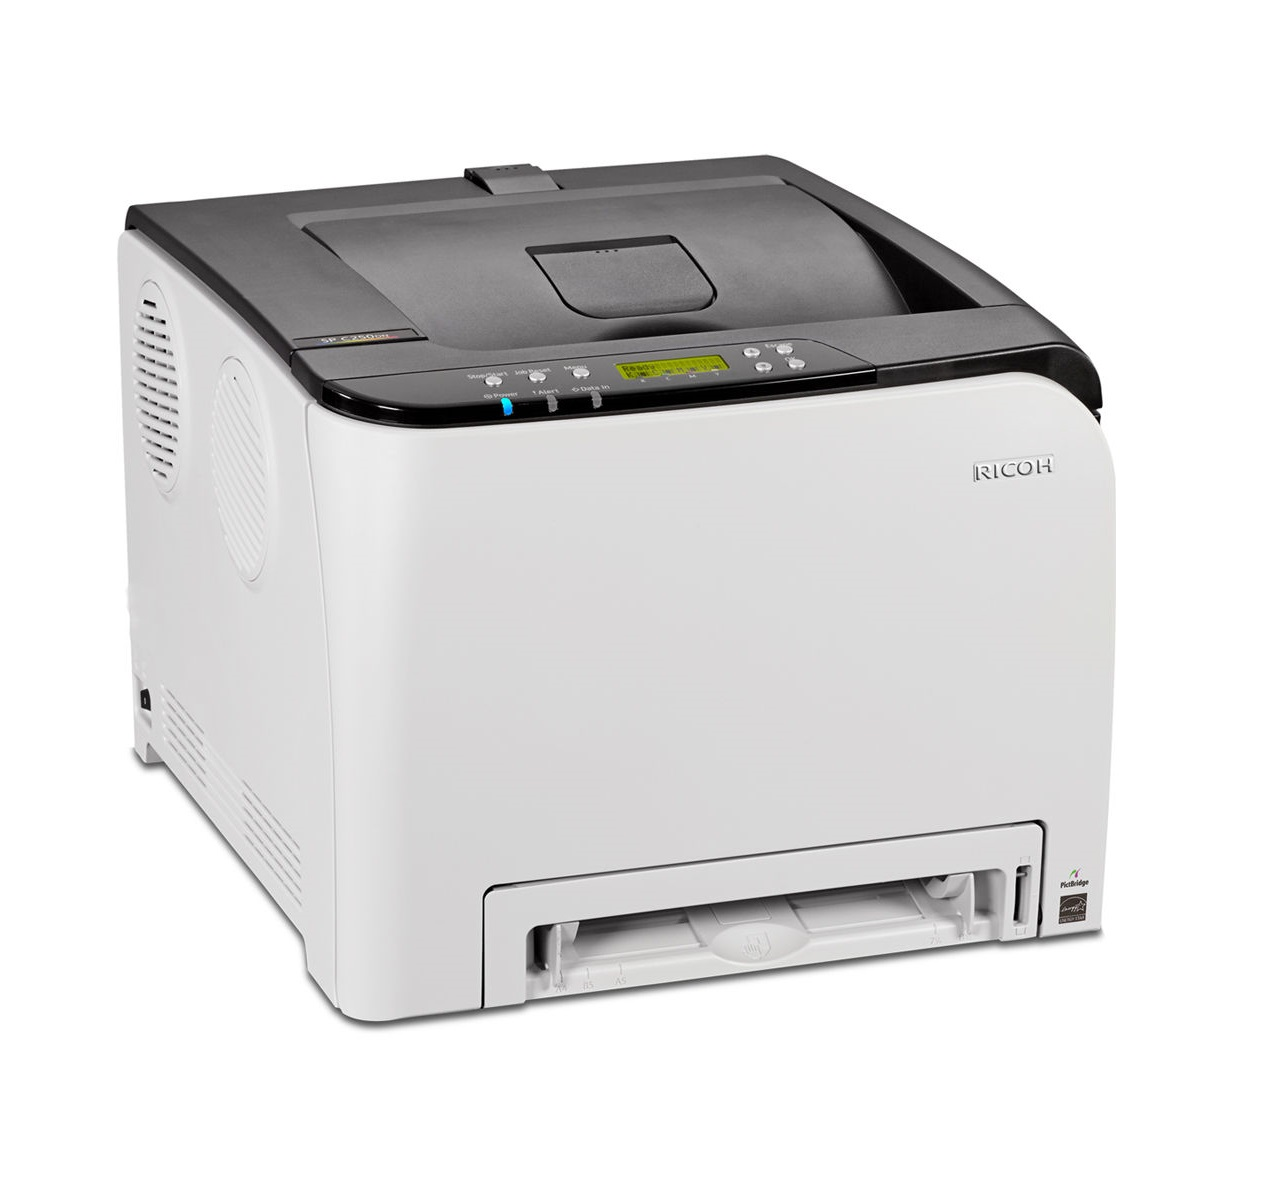 http://tryamm.ro/ro/products/office-printers-fax-scanners/imprimante-a4/